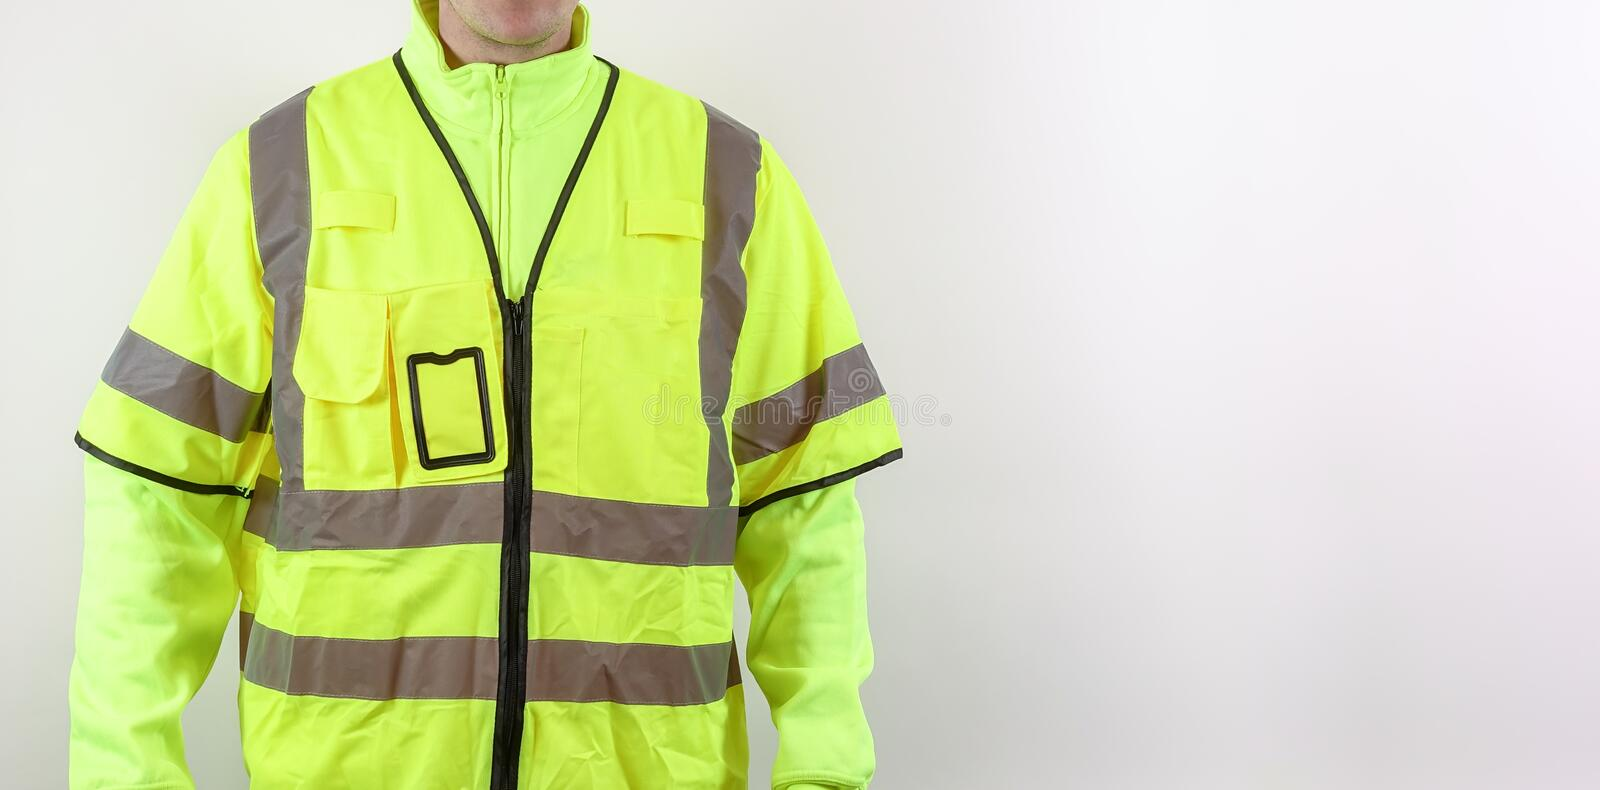 High visibility reflective yellow safety vest royalty free stock photos